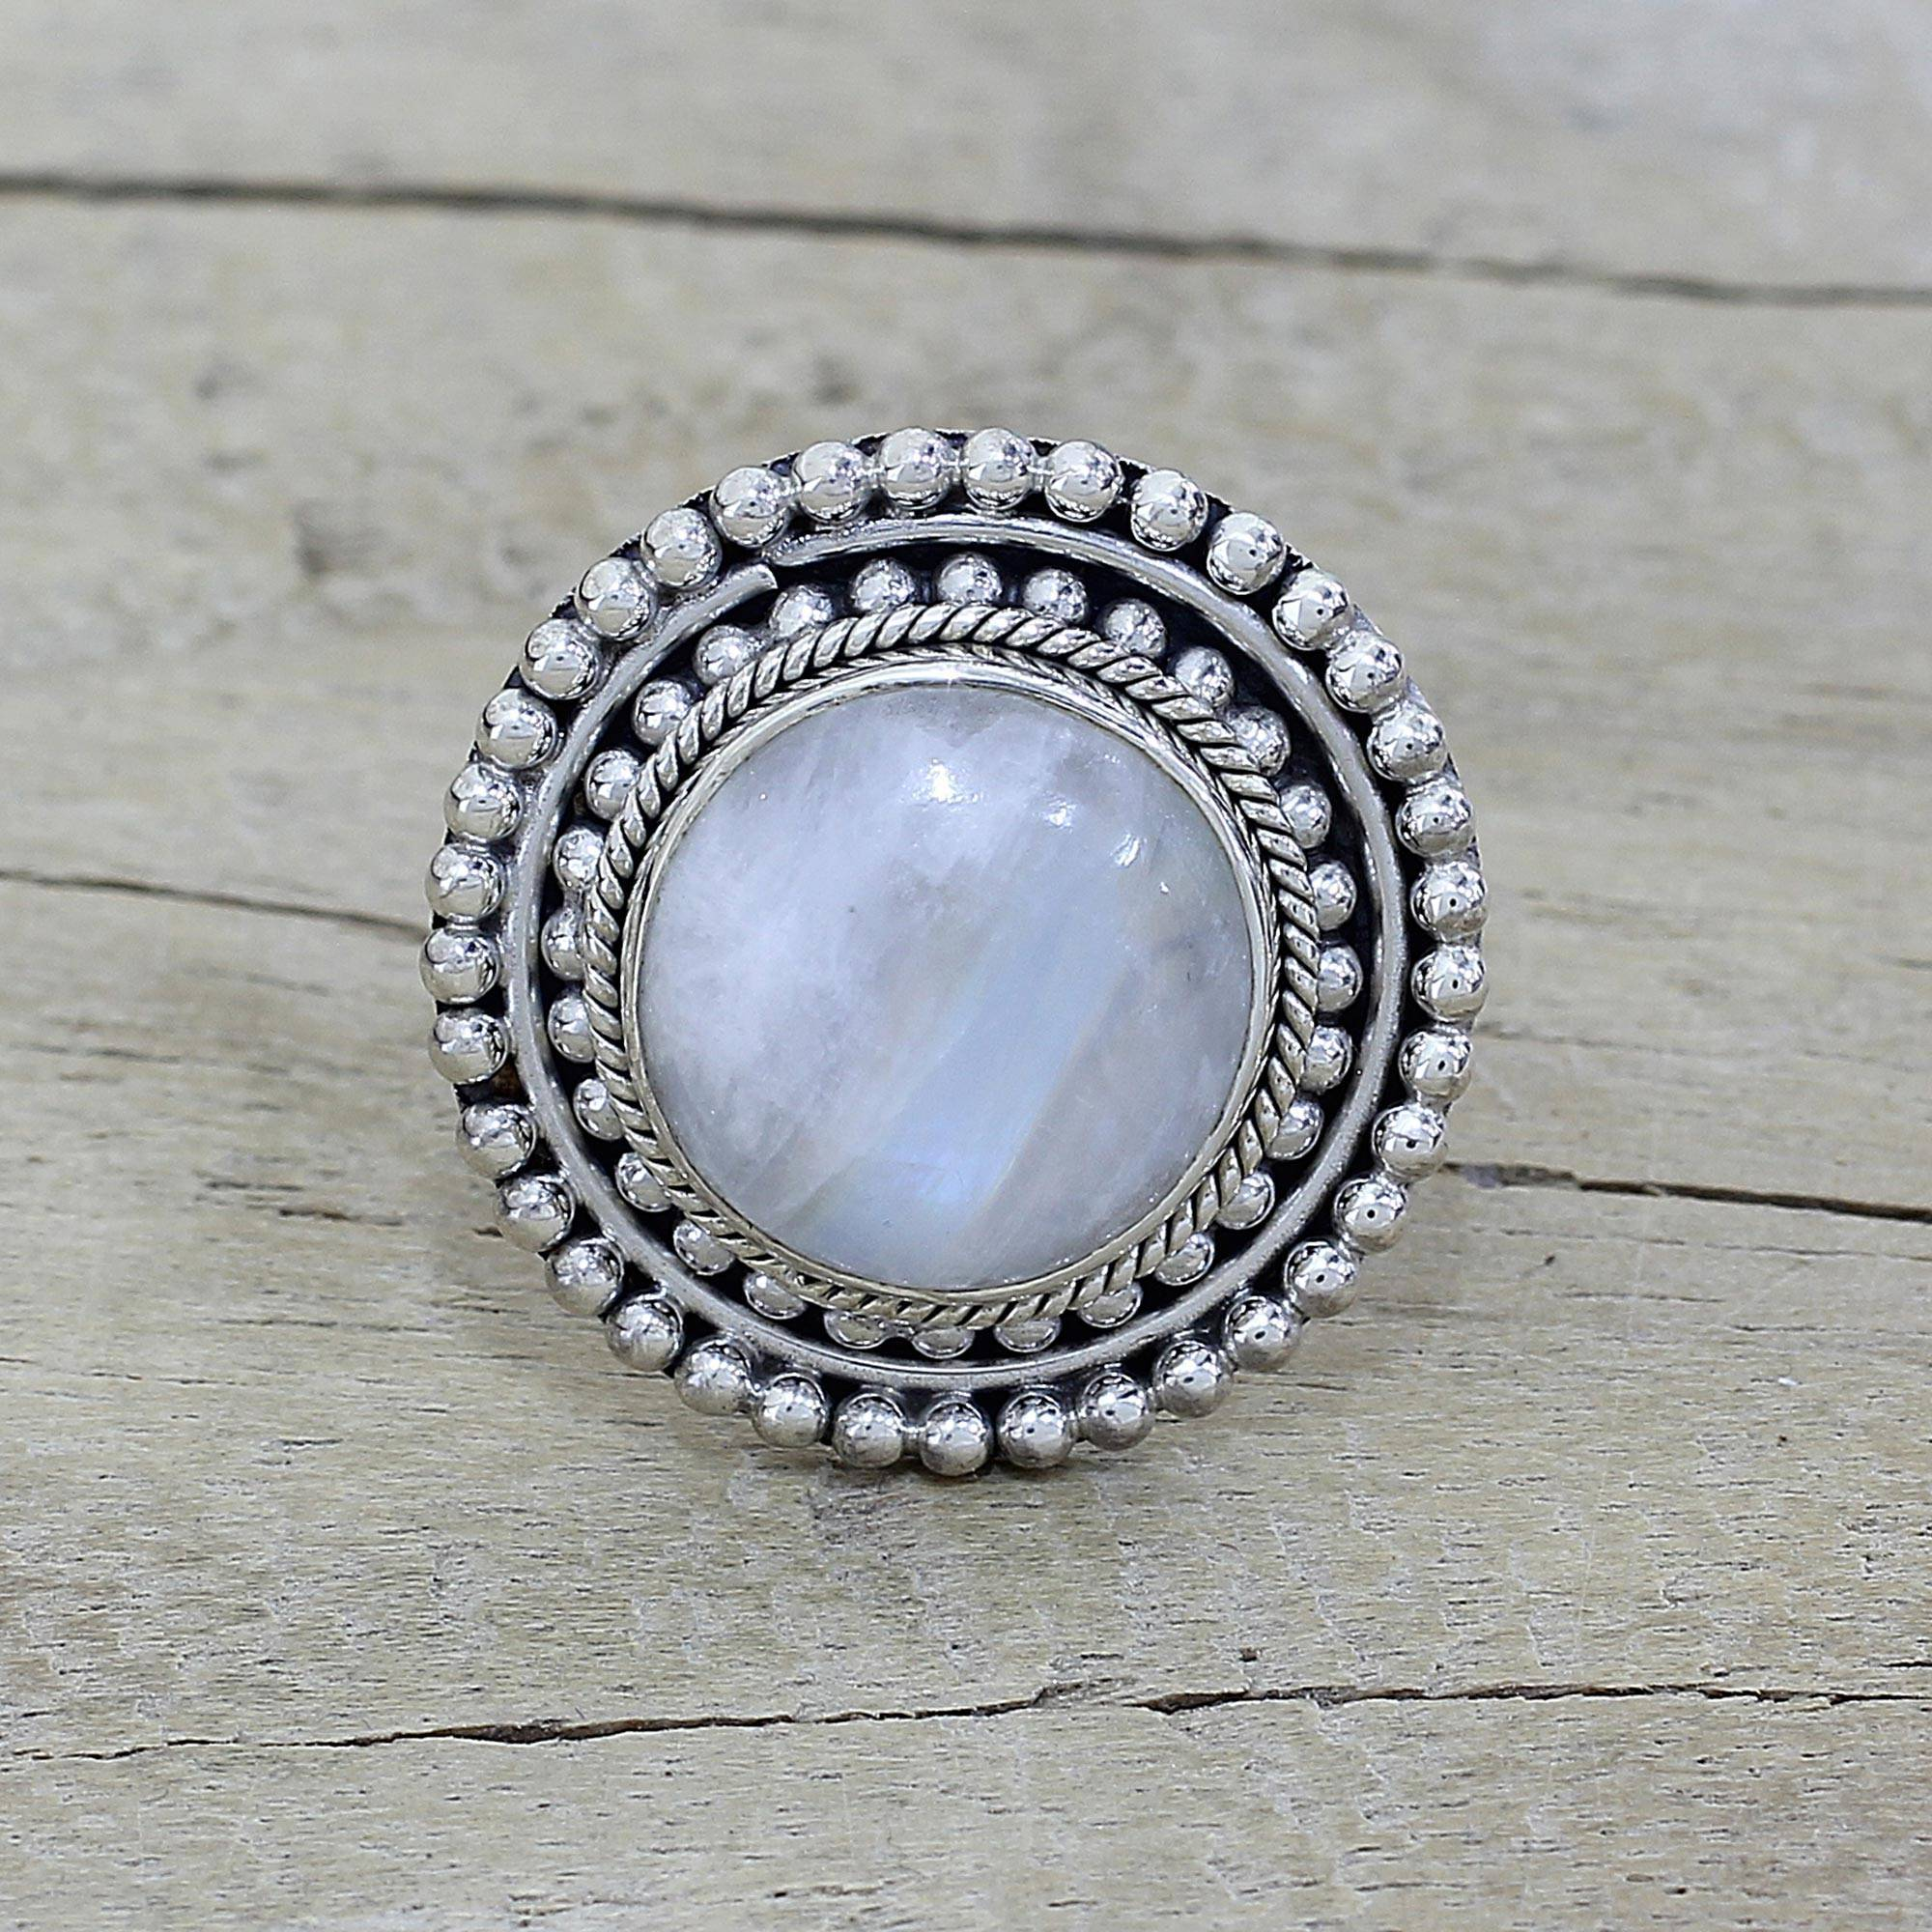 lot jewellery jewels moonstone en s auctions sotheby ecatalogue lr magnificent brooch